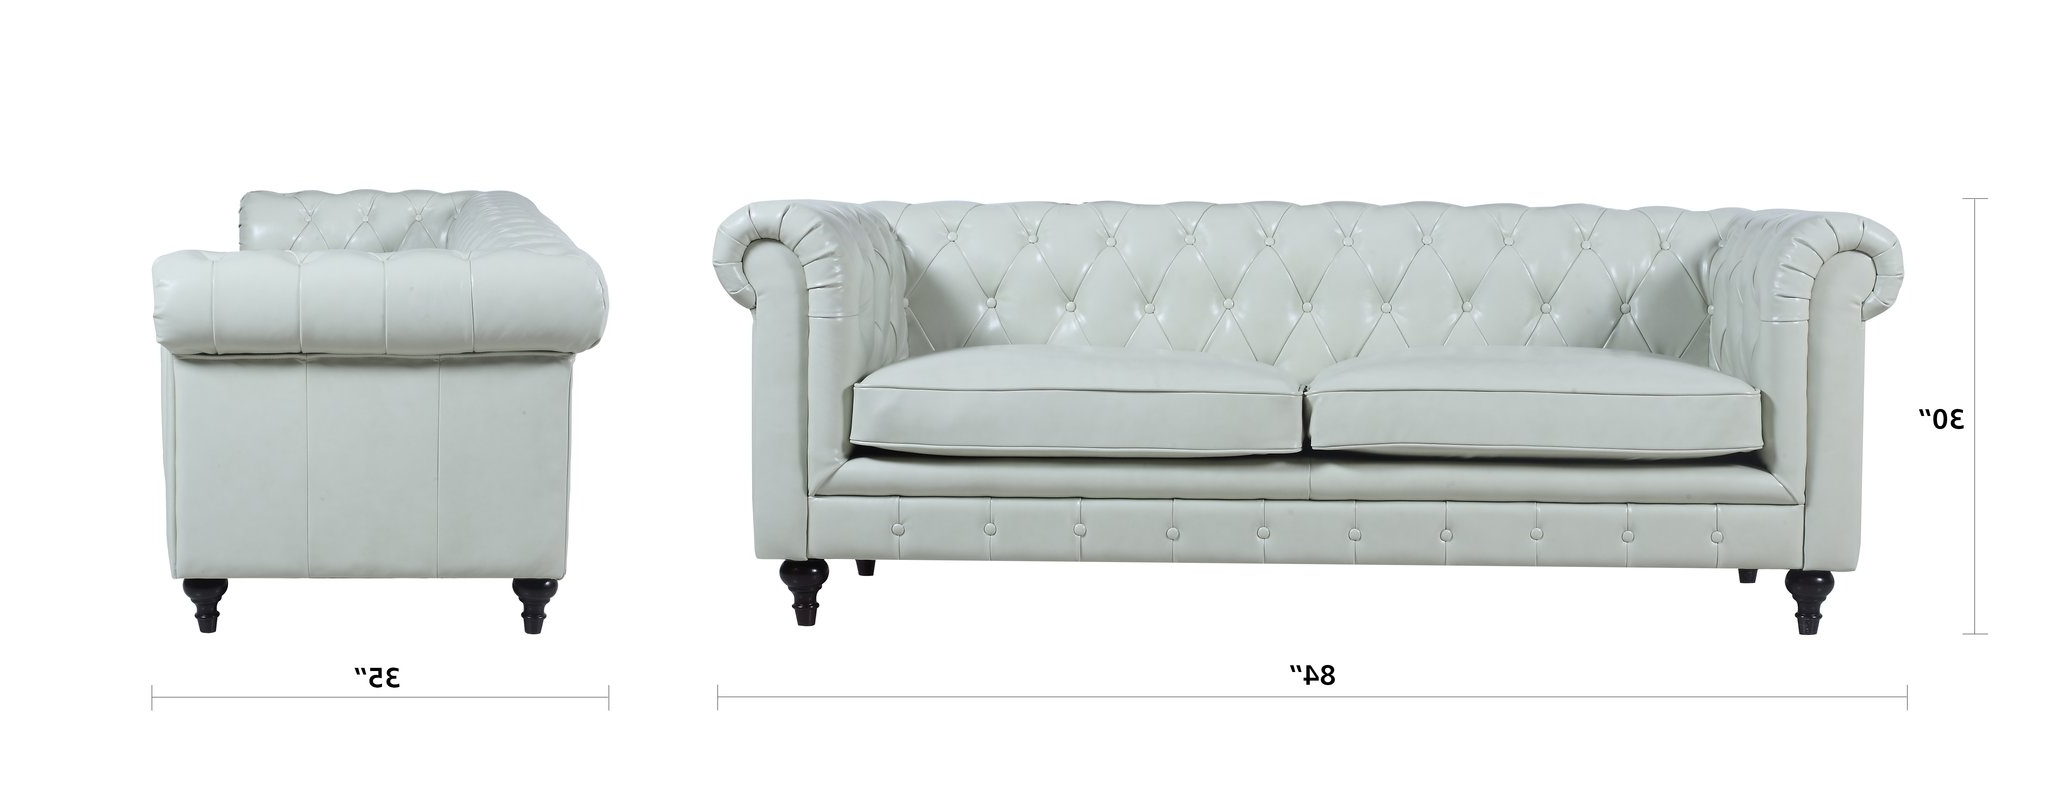 Joss & Main Throughout Tufted Leather Chesterfield Sofas (View 12 of 15)